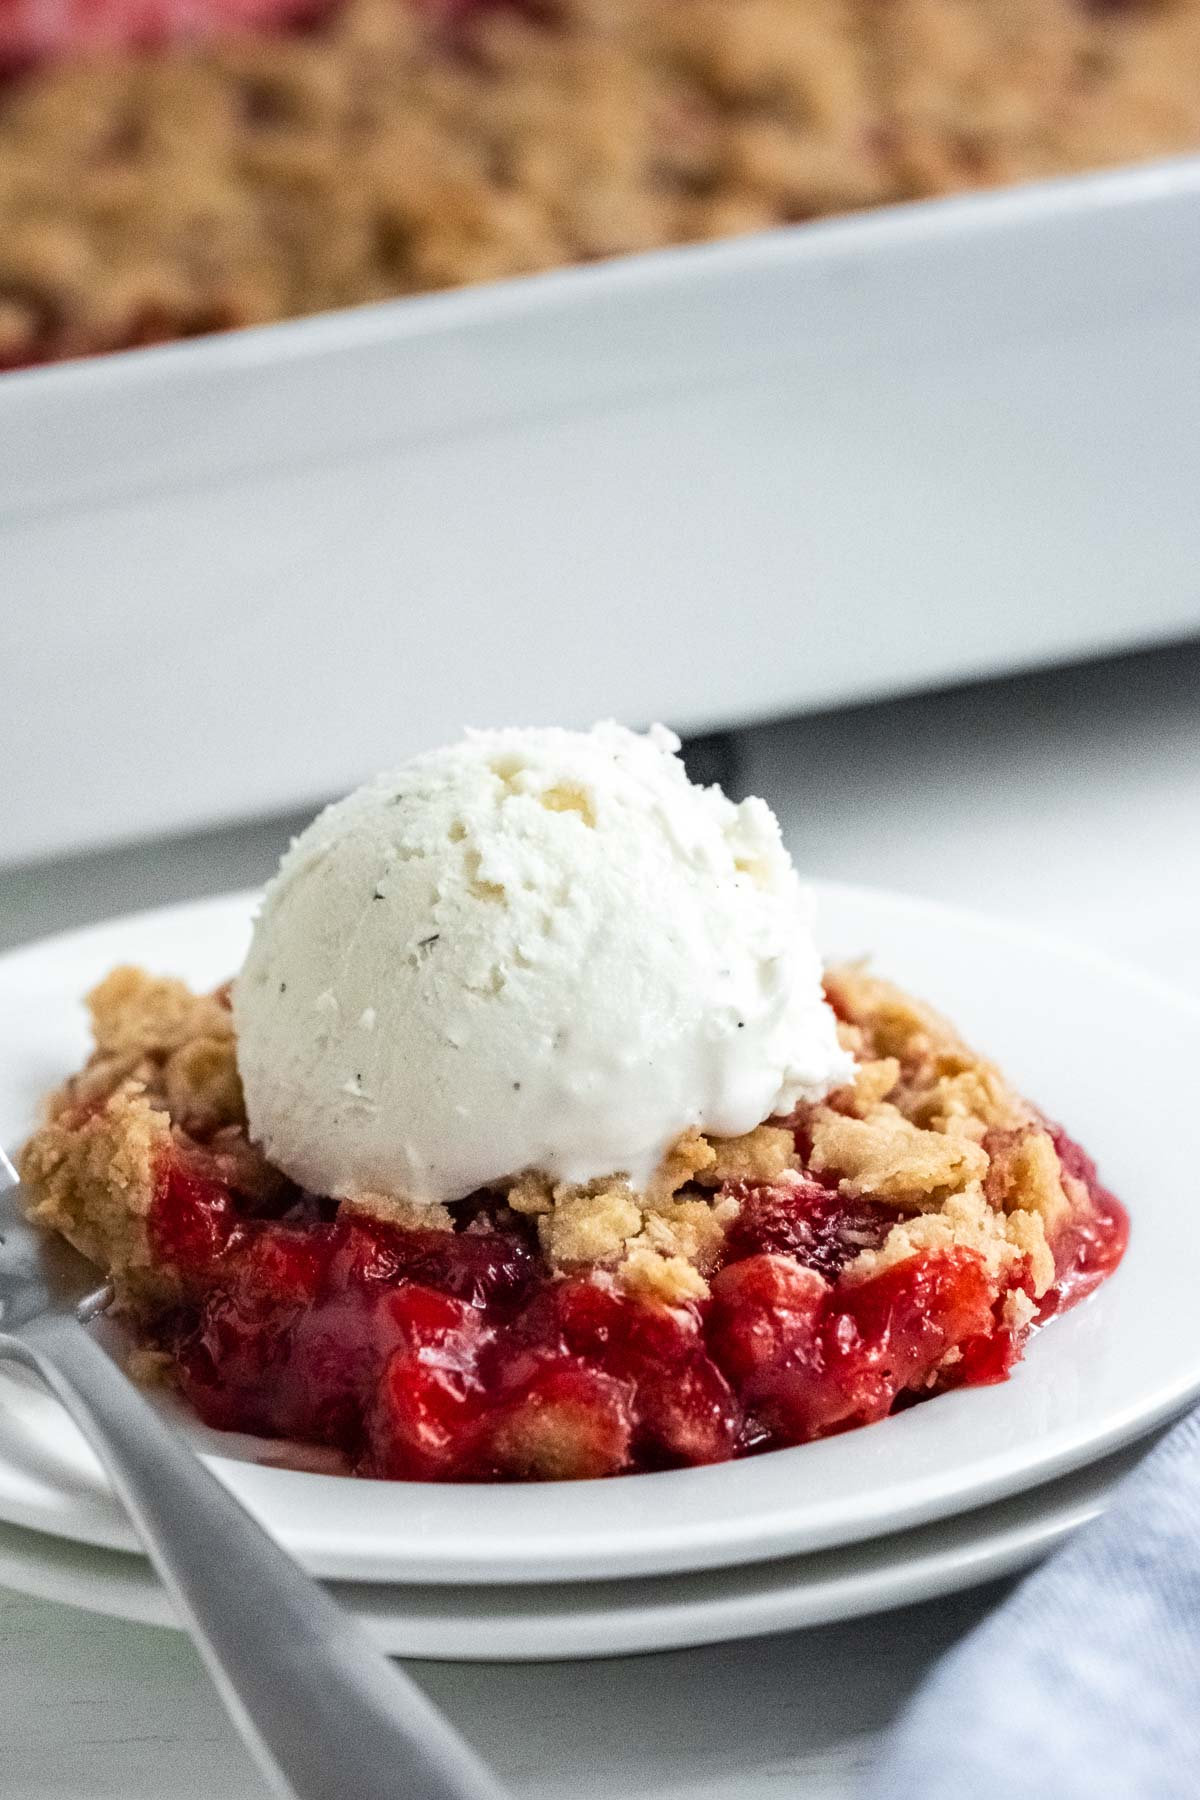 closeup of strawberry crumble topped with ice cream on a white plate with baking dish in the background